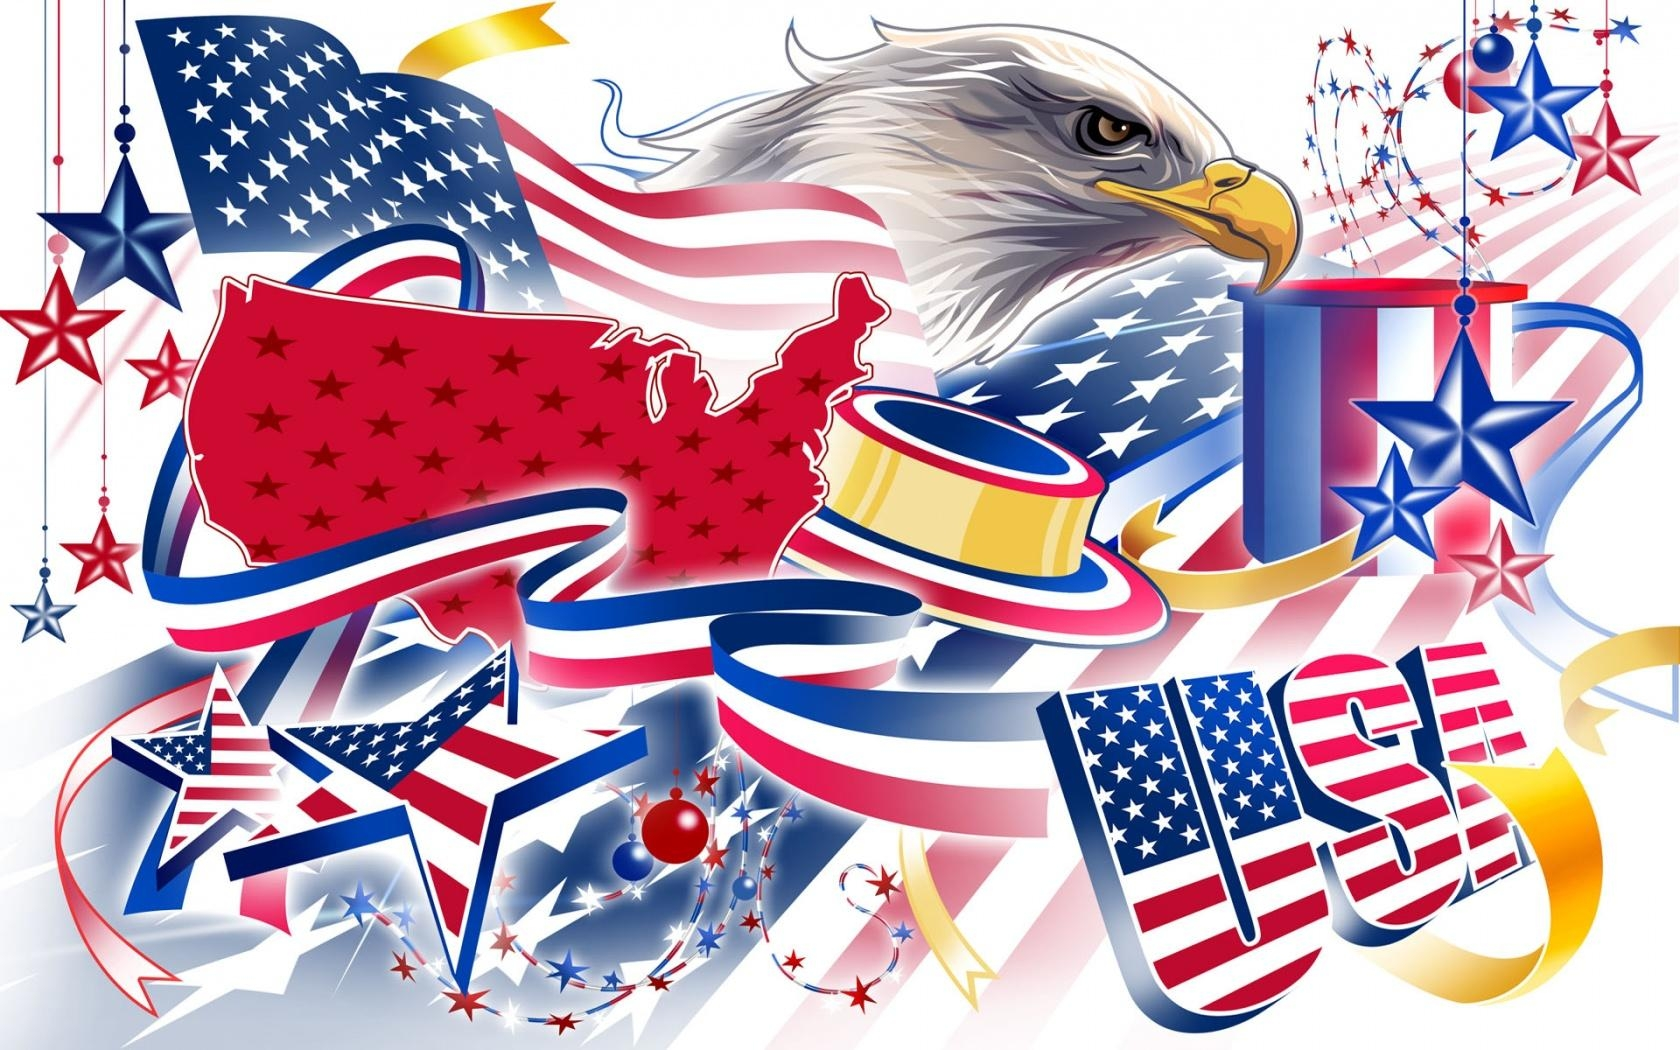 4th of July Wallpapers   Digital HD Photos 1680x1050